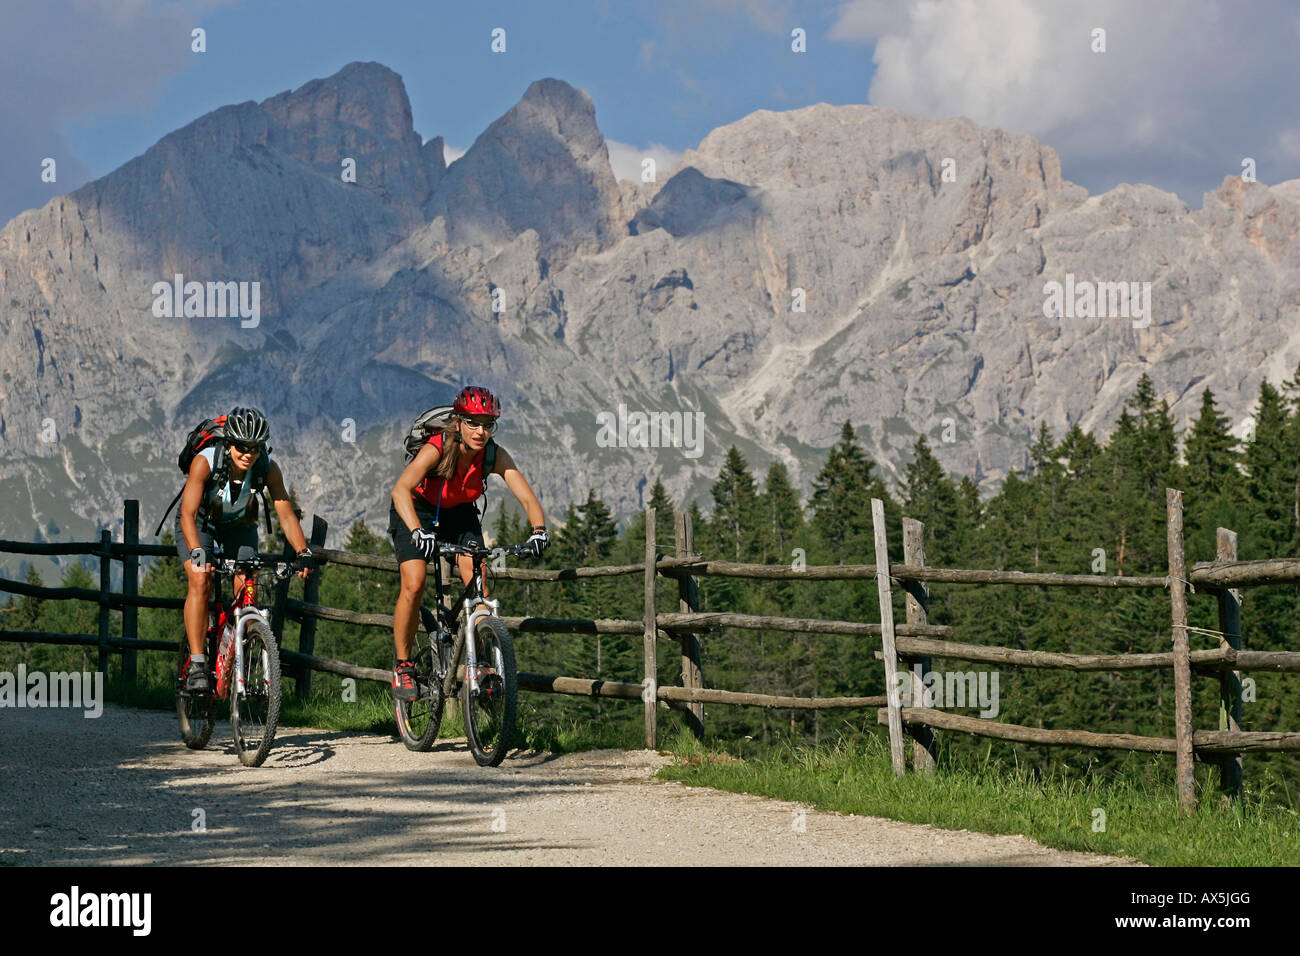 Female mountain bikers at Schiller Hof, Mt. Rosengarten in the background, Dolomites, Northern Italy, Europe - Stock Image